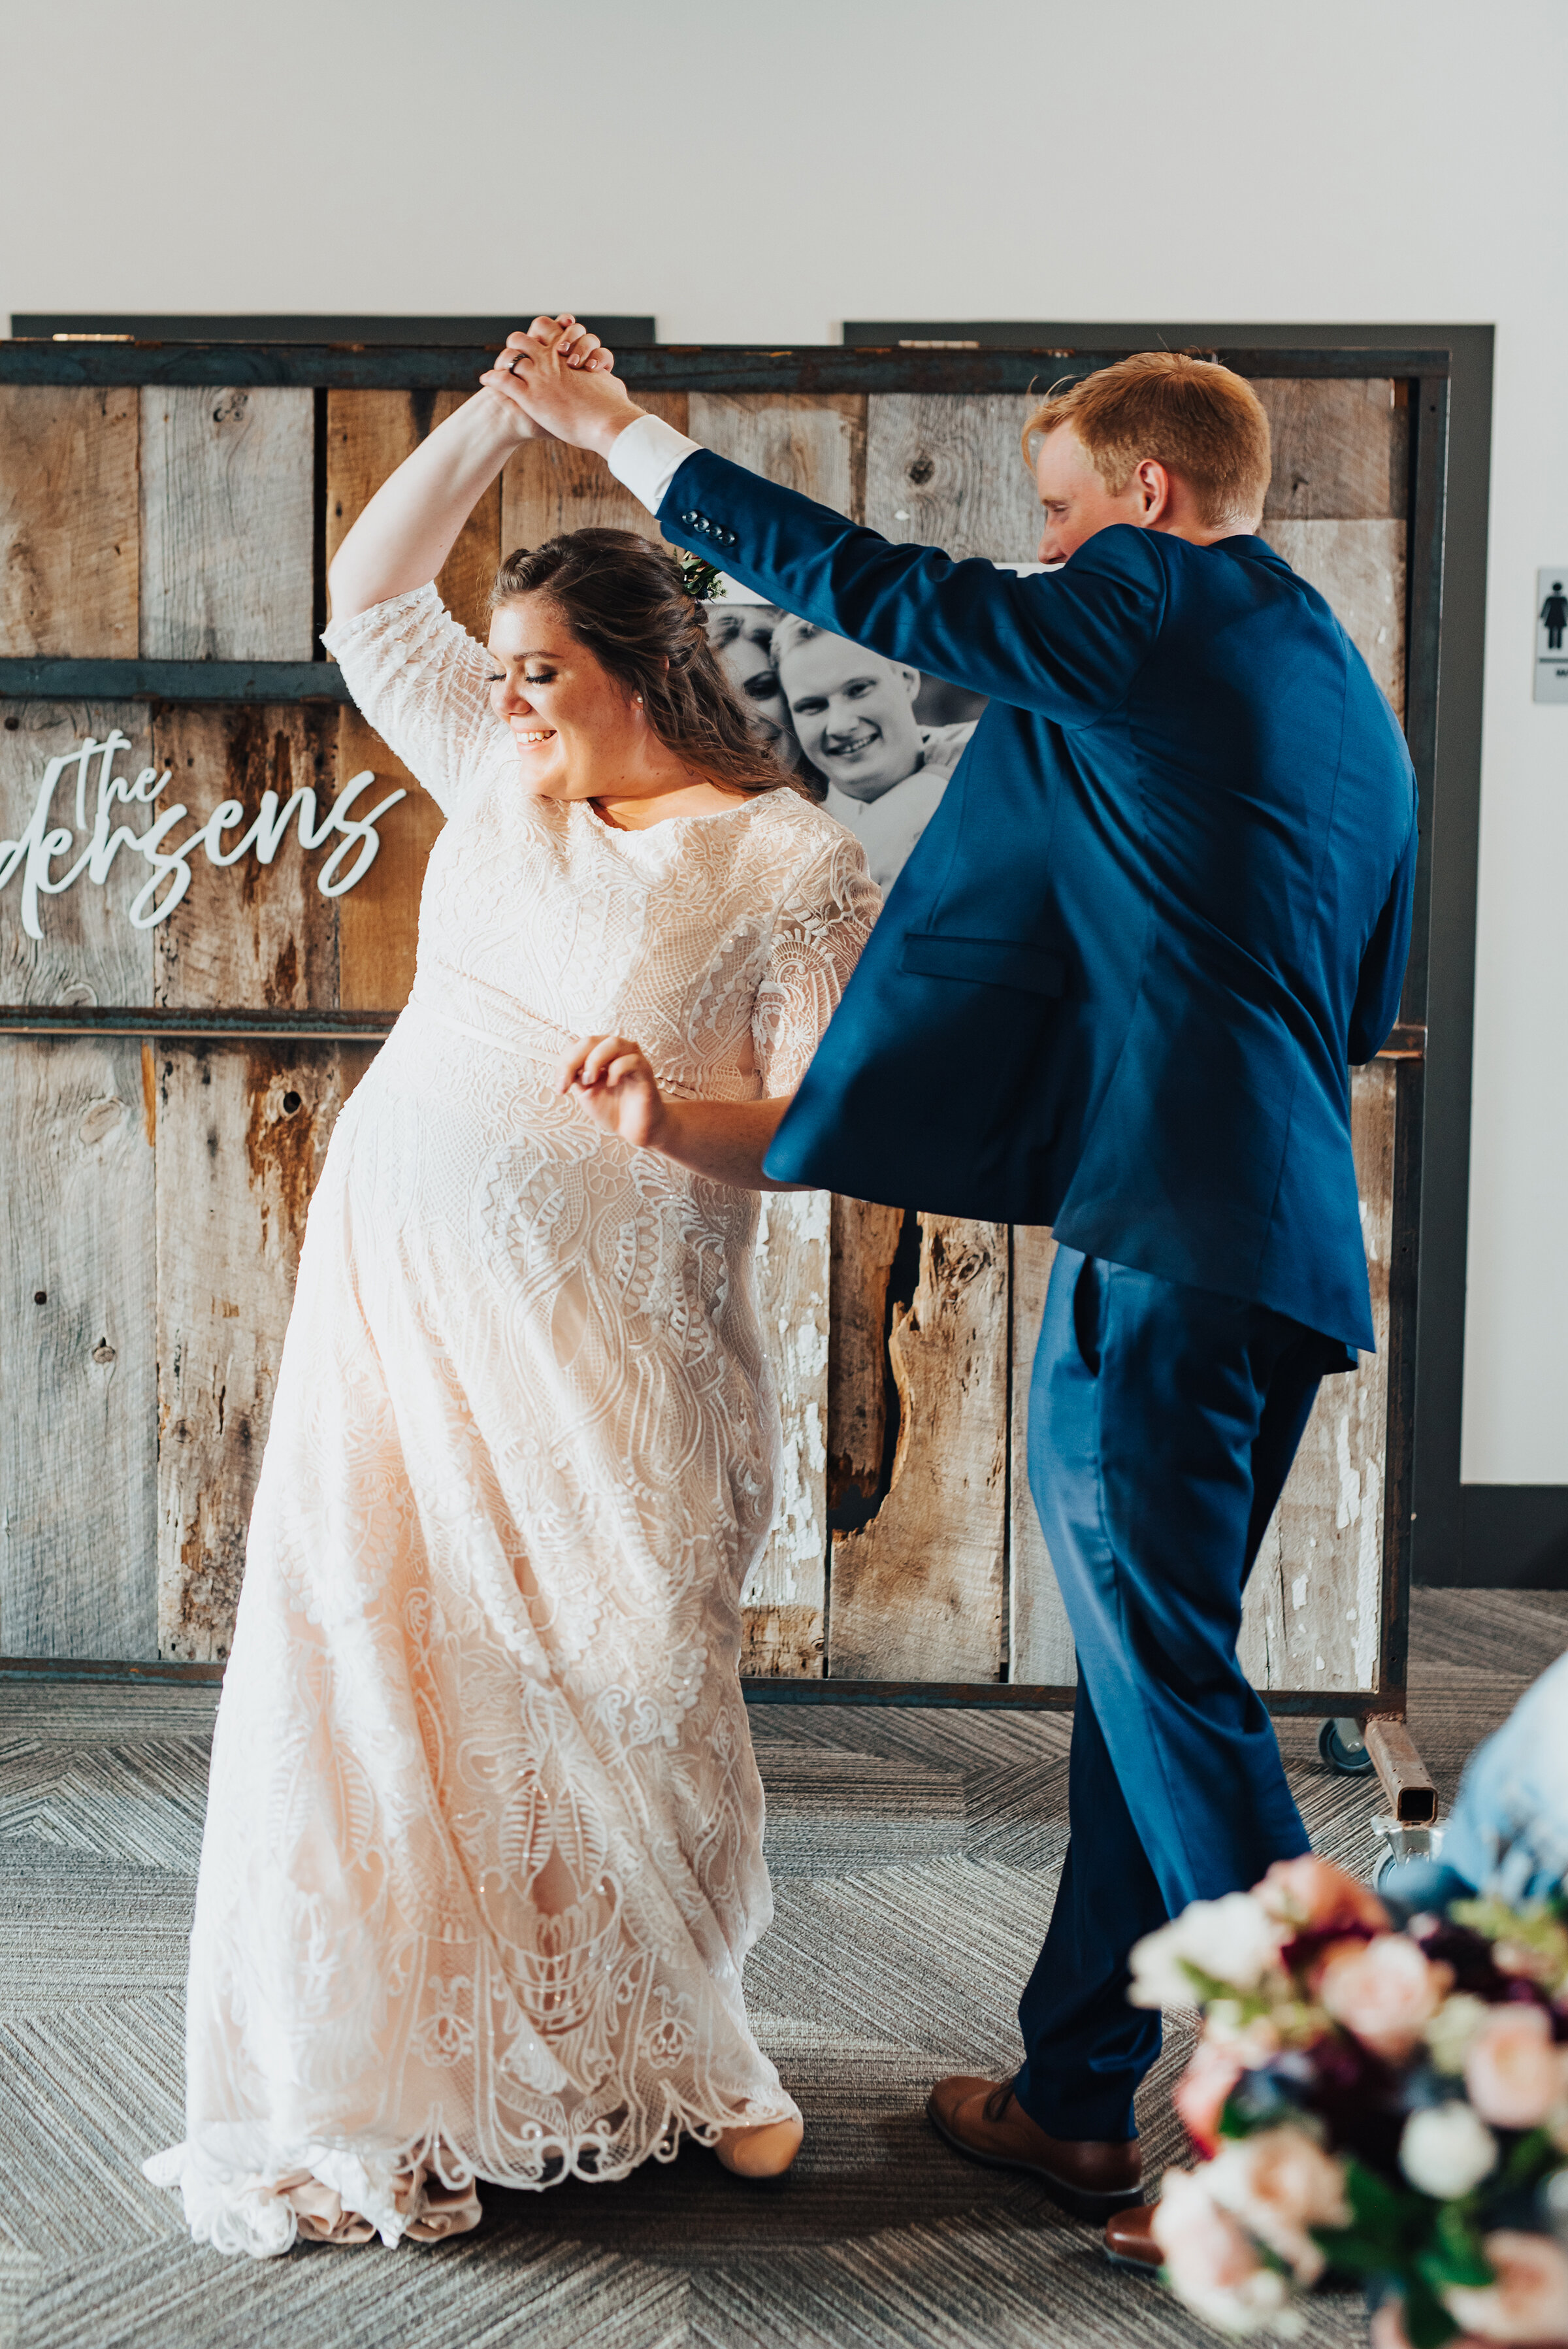 Tender moment of the bride and groom dancing by Kristi Alyse Photography in northern Utah. First dance meaningful moments bride and groom lace wedding dress blue grooms suit wedding décor inspo logan Utah wedding day photography Kristi Alyse #weddinginspo #loganutah #brideandgroom #utahbride #utahweddingphotographer#meaningfulmoment #weddingphotography #northernutahwedding #weddinghairstyles #weddingday #bridals